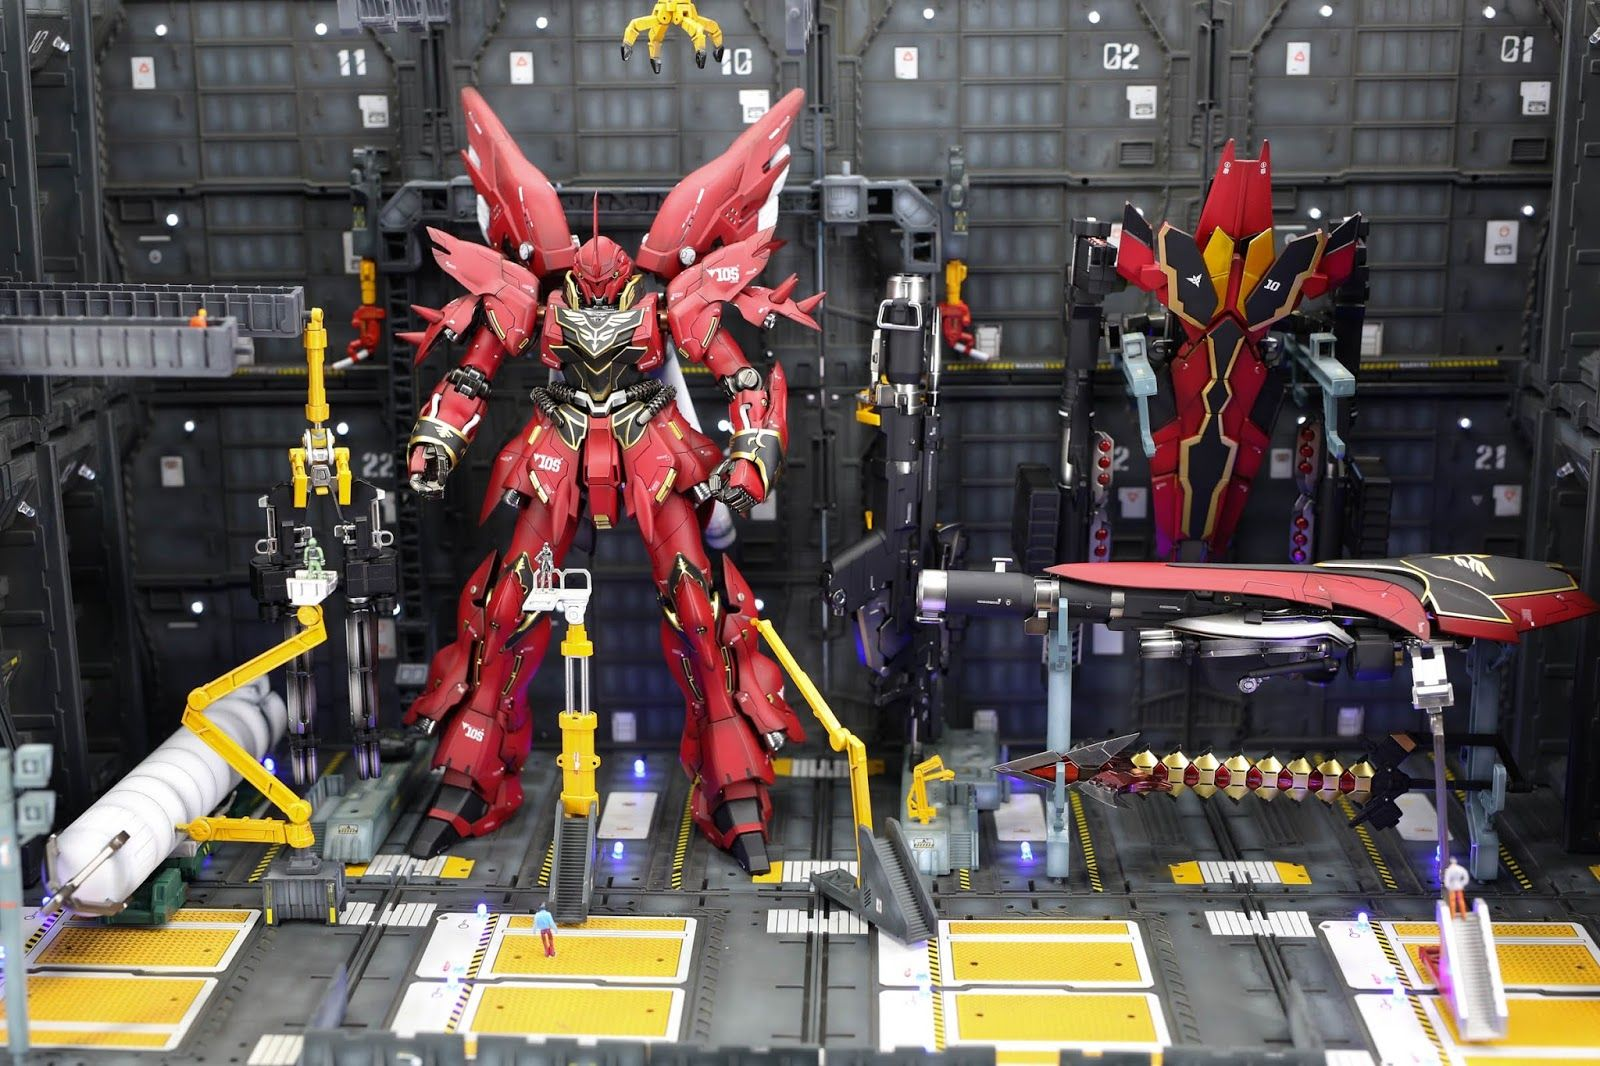 GUNDAM GUY: MG 1/100 Full Armor Sinanju - Diorama Build